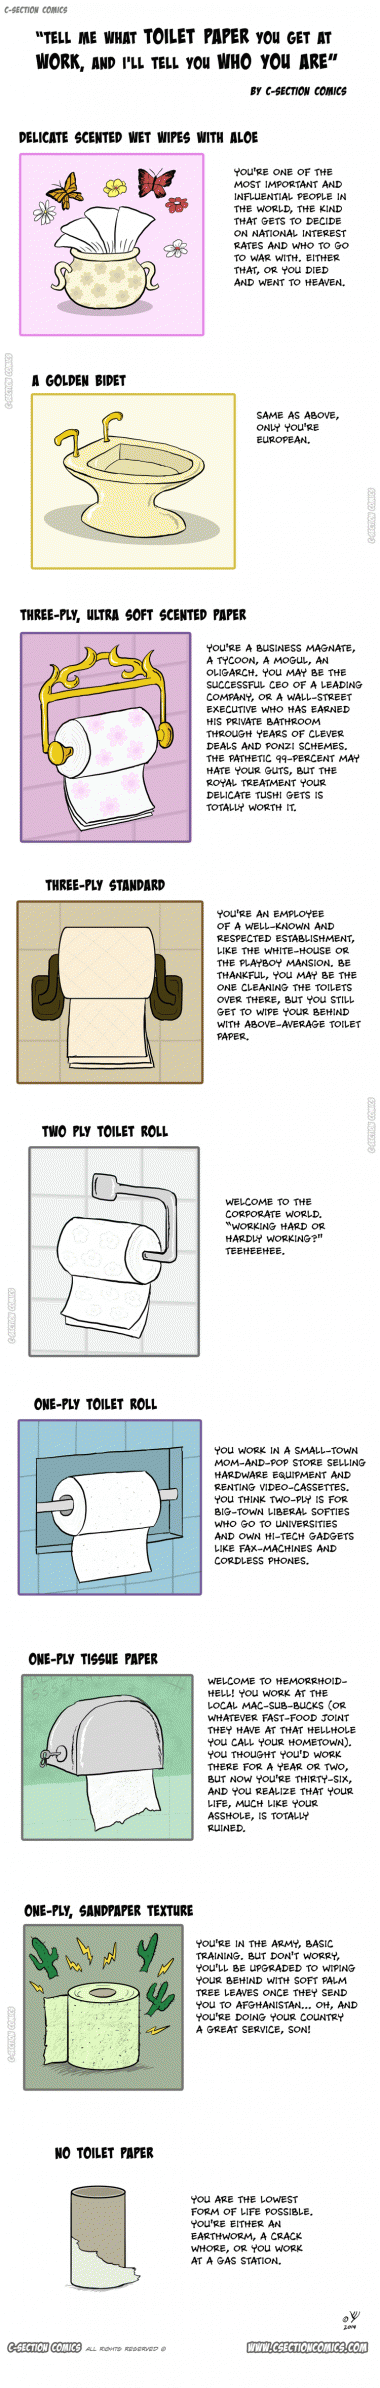 How Your Job Affects Your Toilet Paper